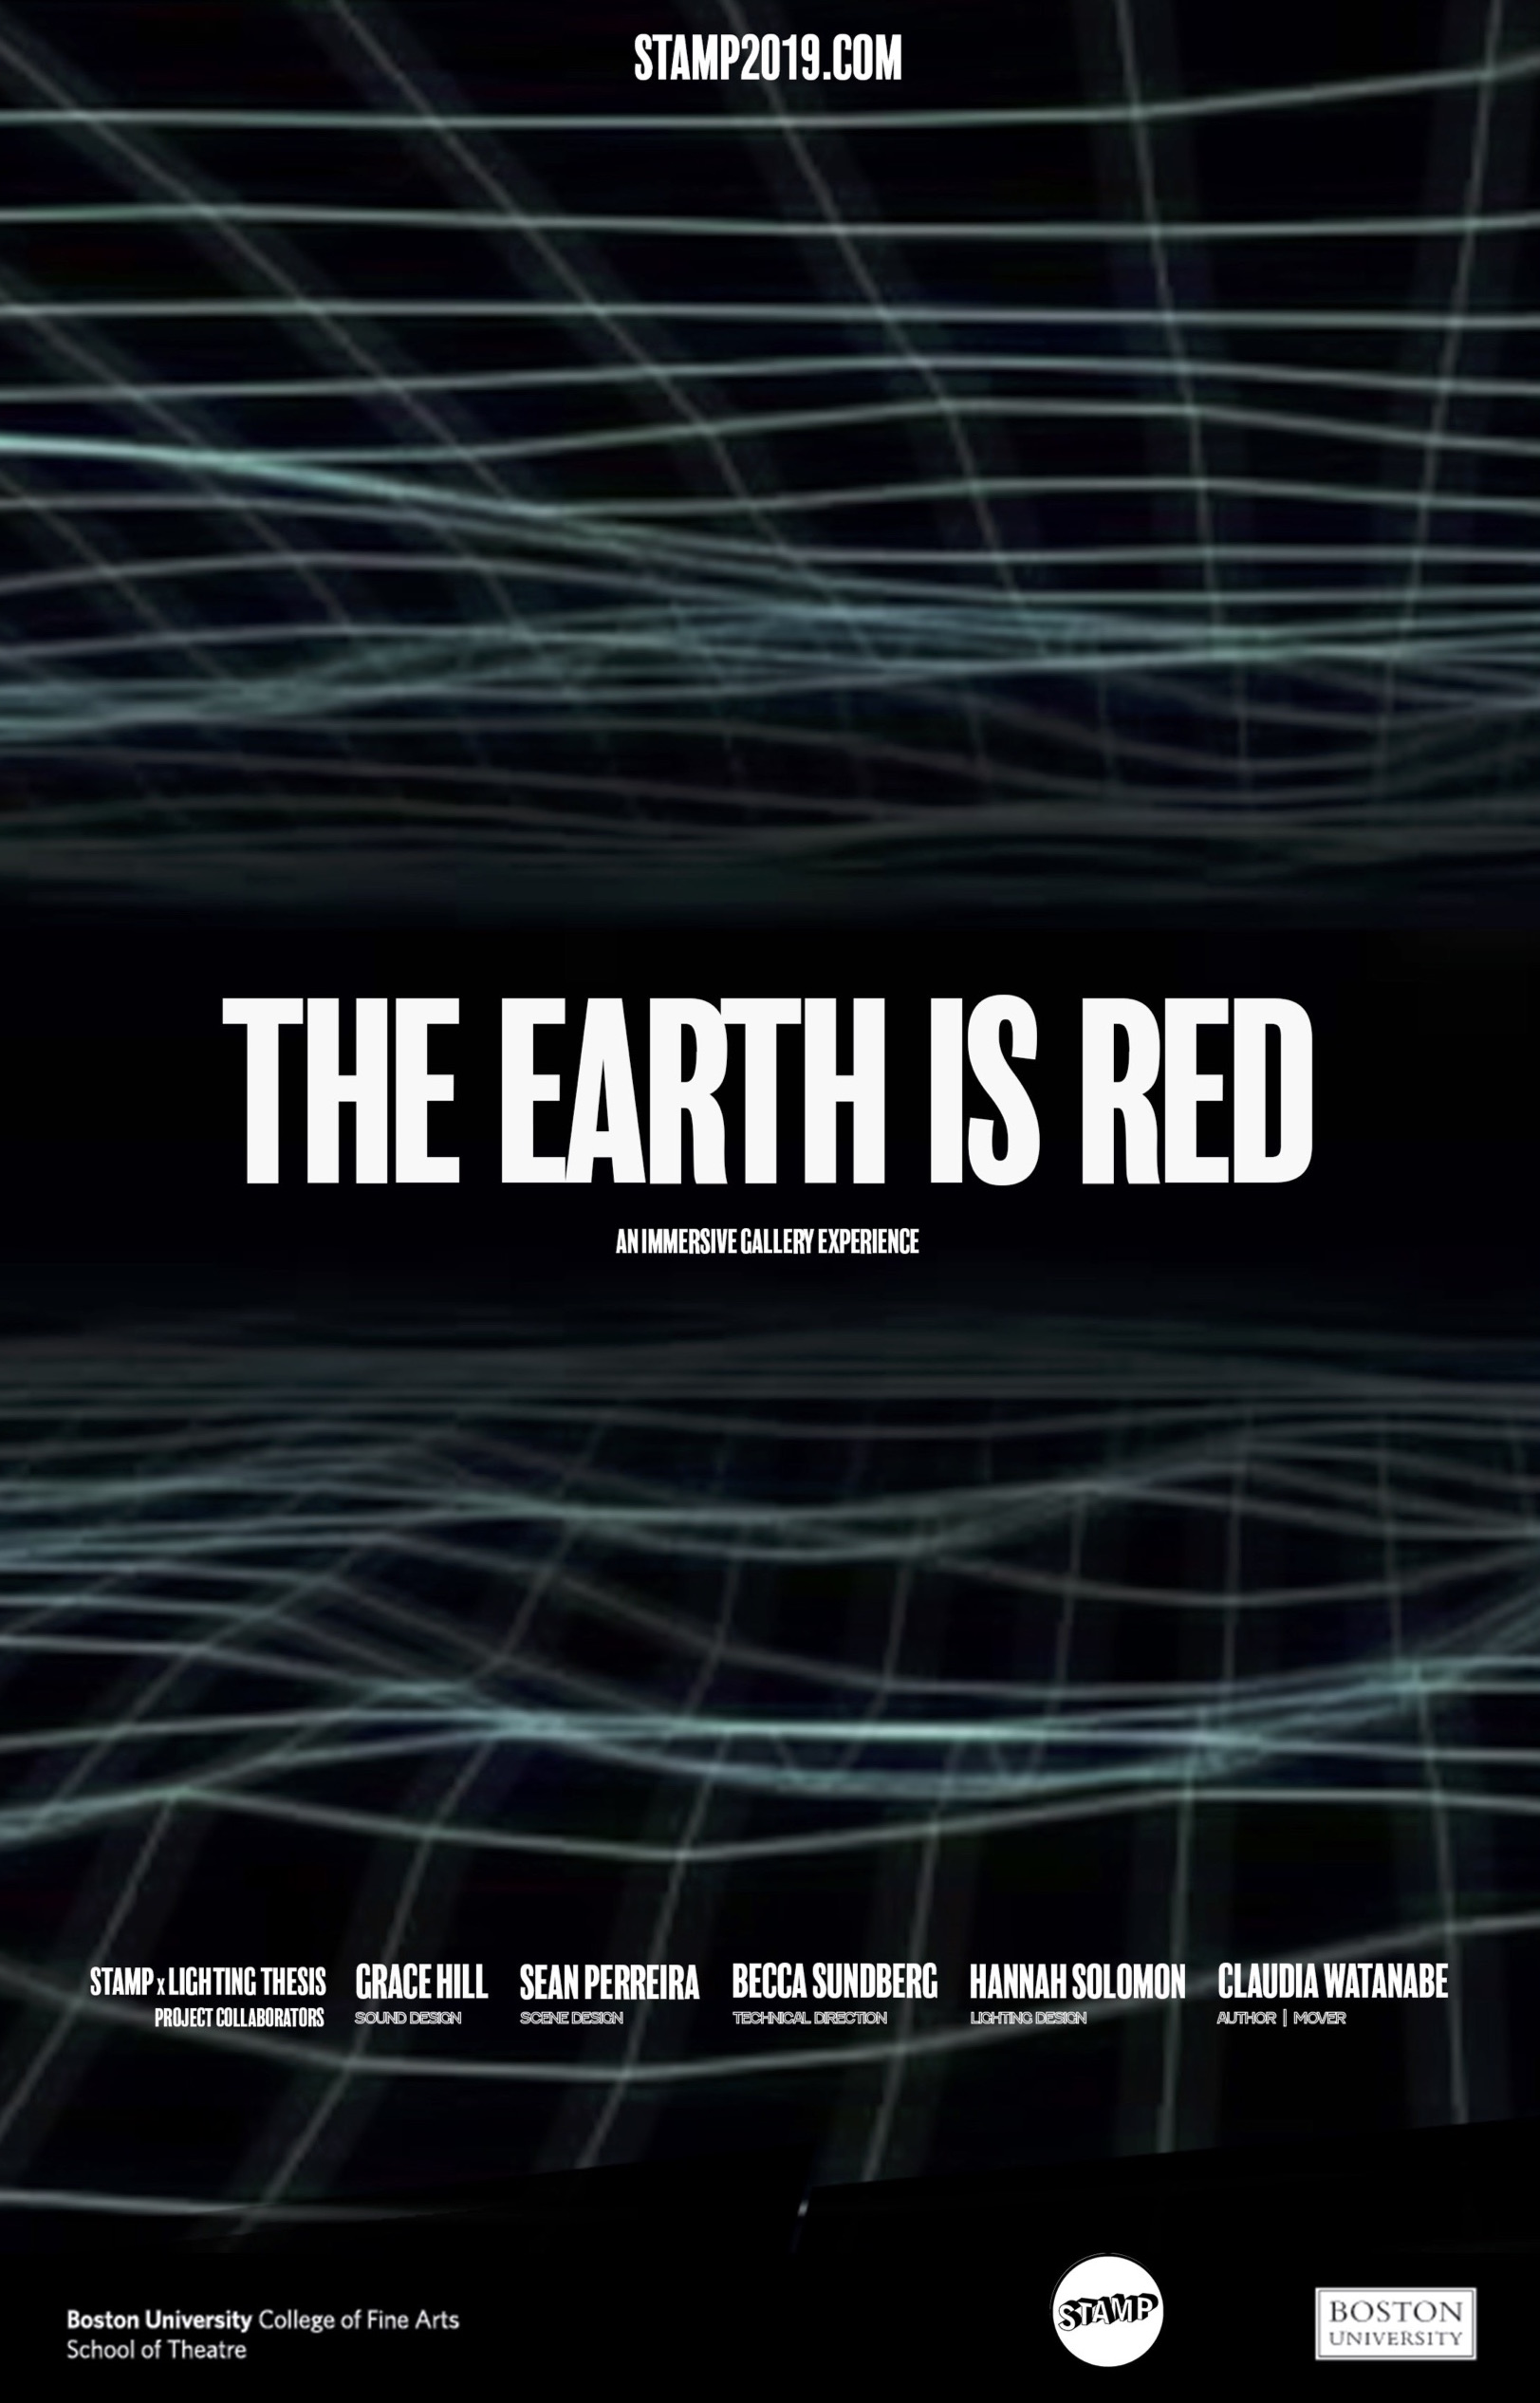 TheEarthisRed_Poster11x17.jpg